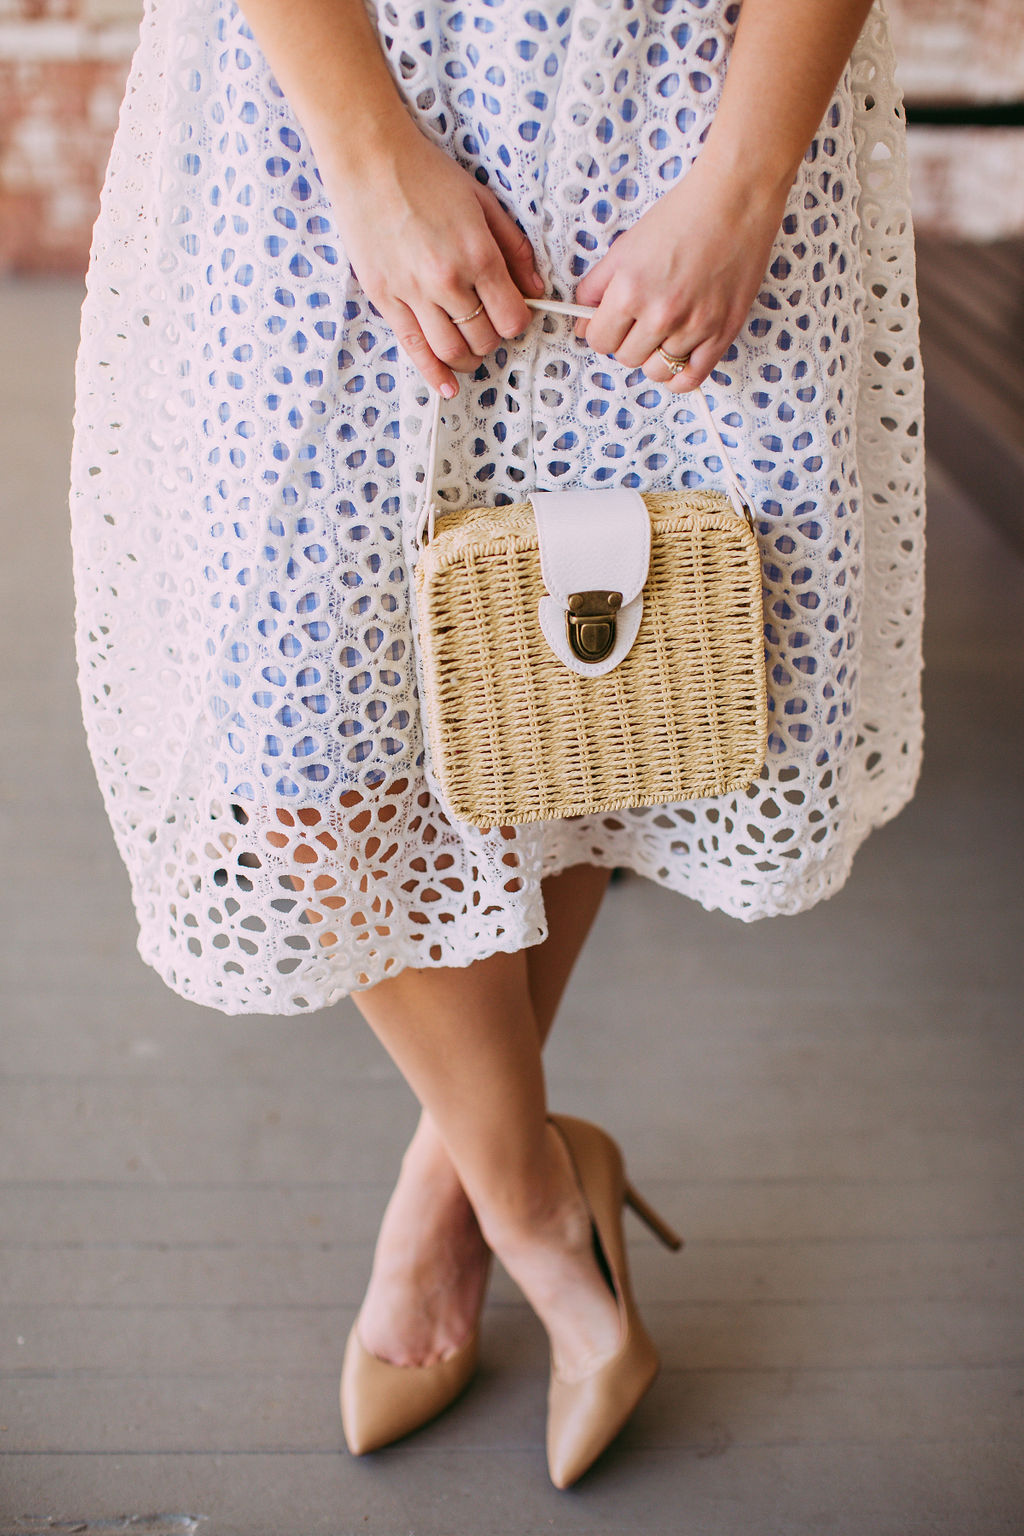 Wicker Bags Under $50 and How To Style Them